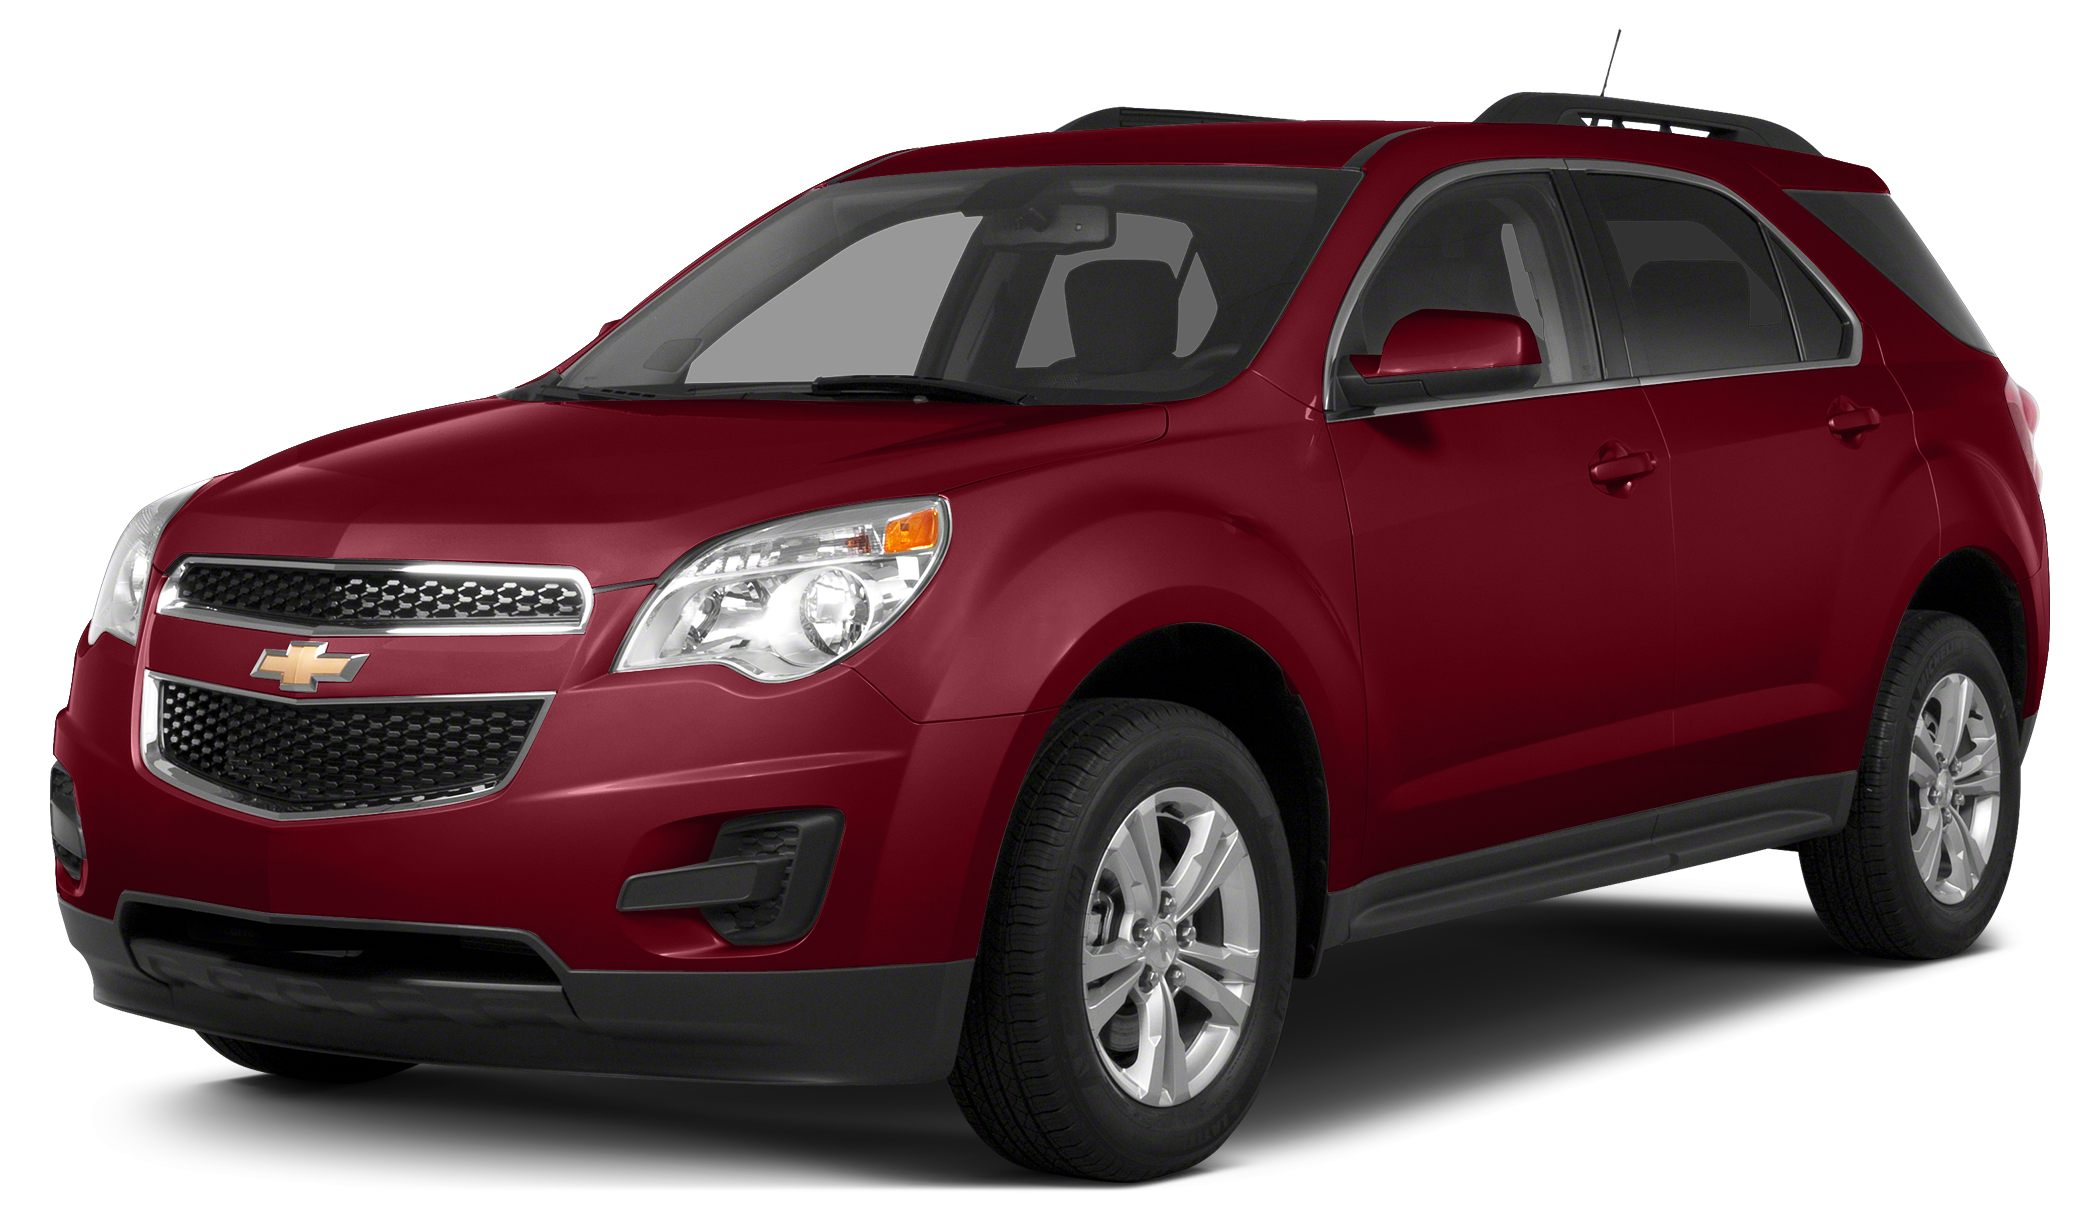 2014 Chevrolet Equinox 2LT Enjoy the open road in this 2014 Chevrolet Equinox LT with quality con